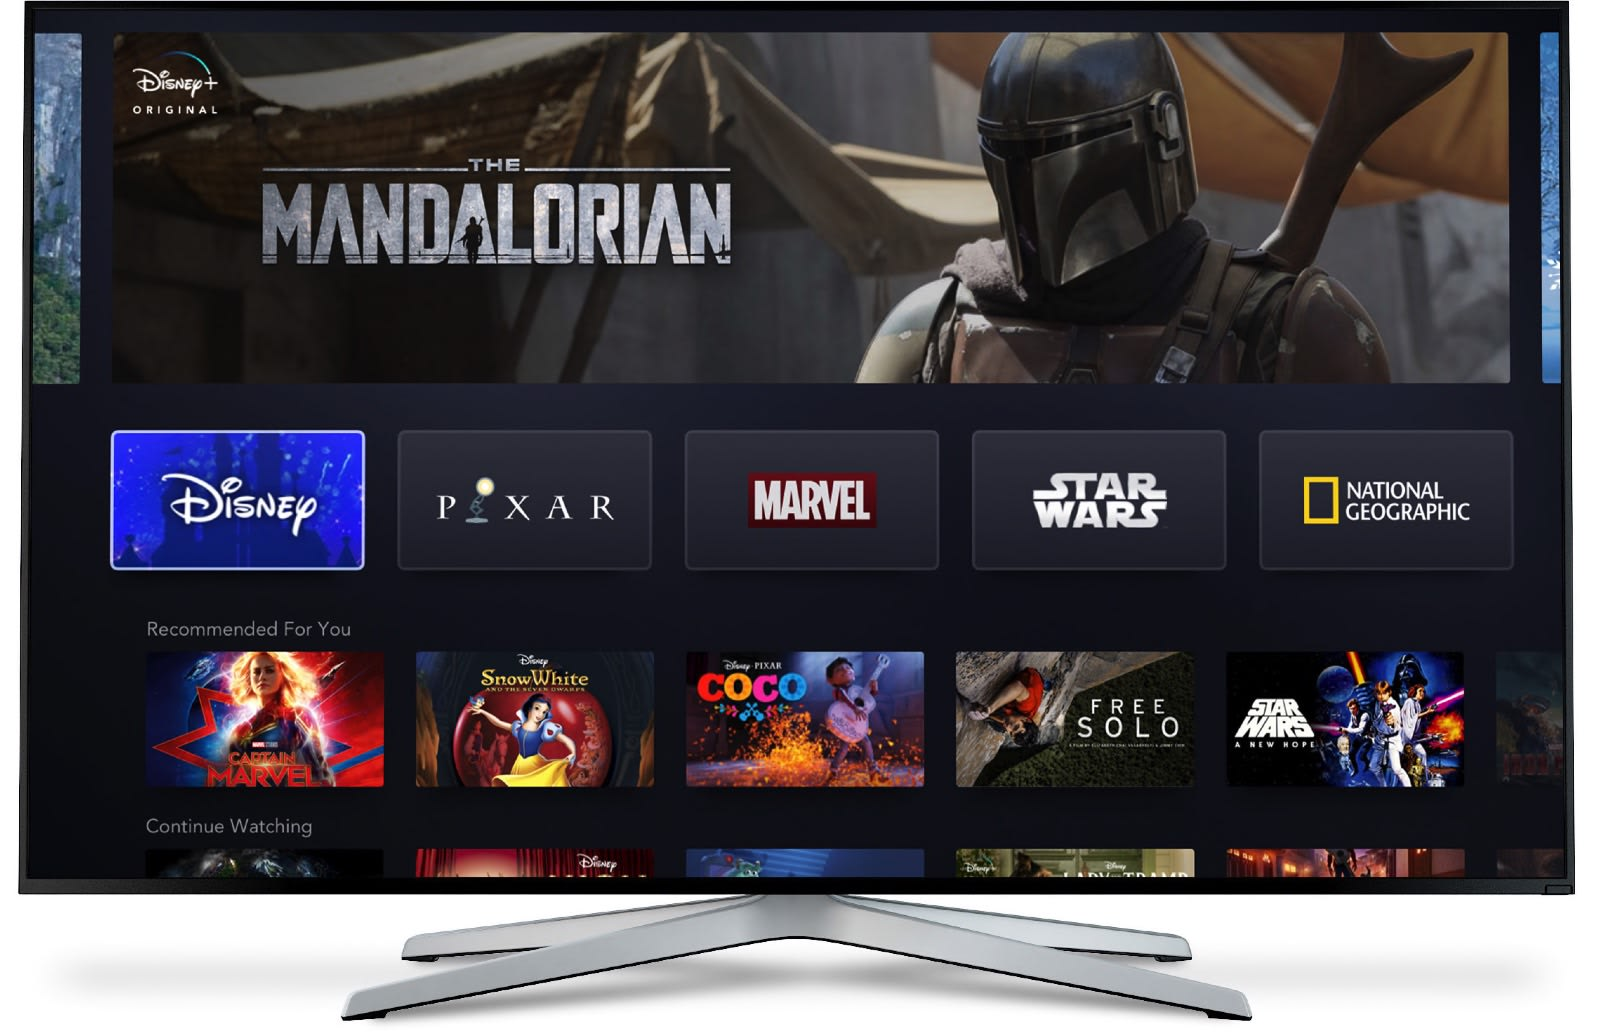 Disney+ will have apps for iOS, Apple TV, Android and Xbox One